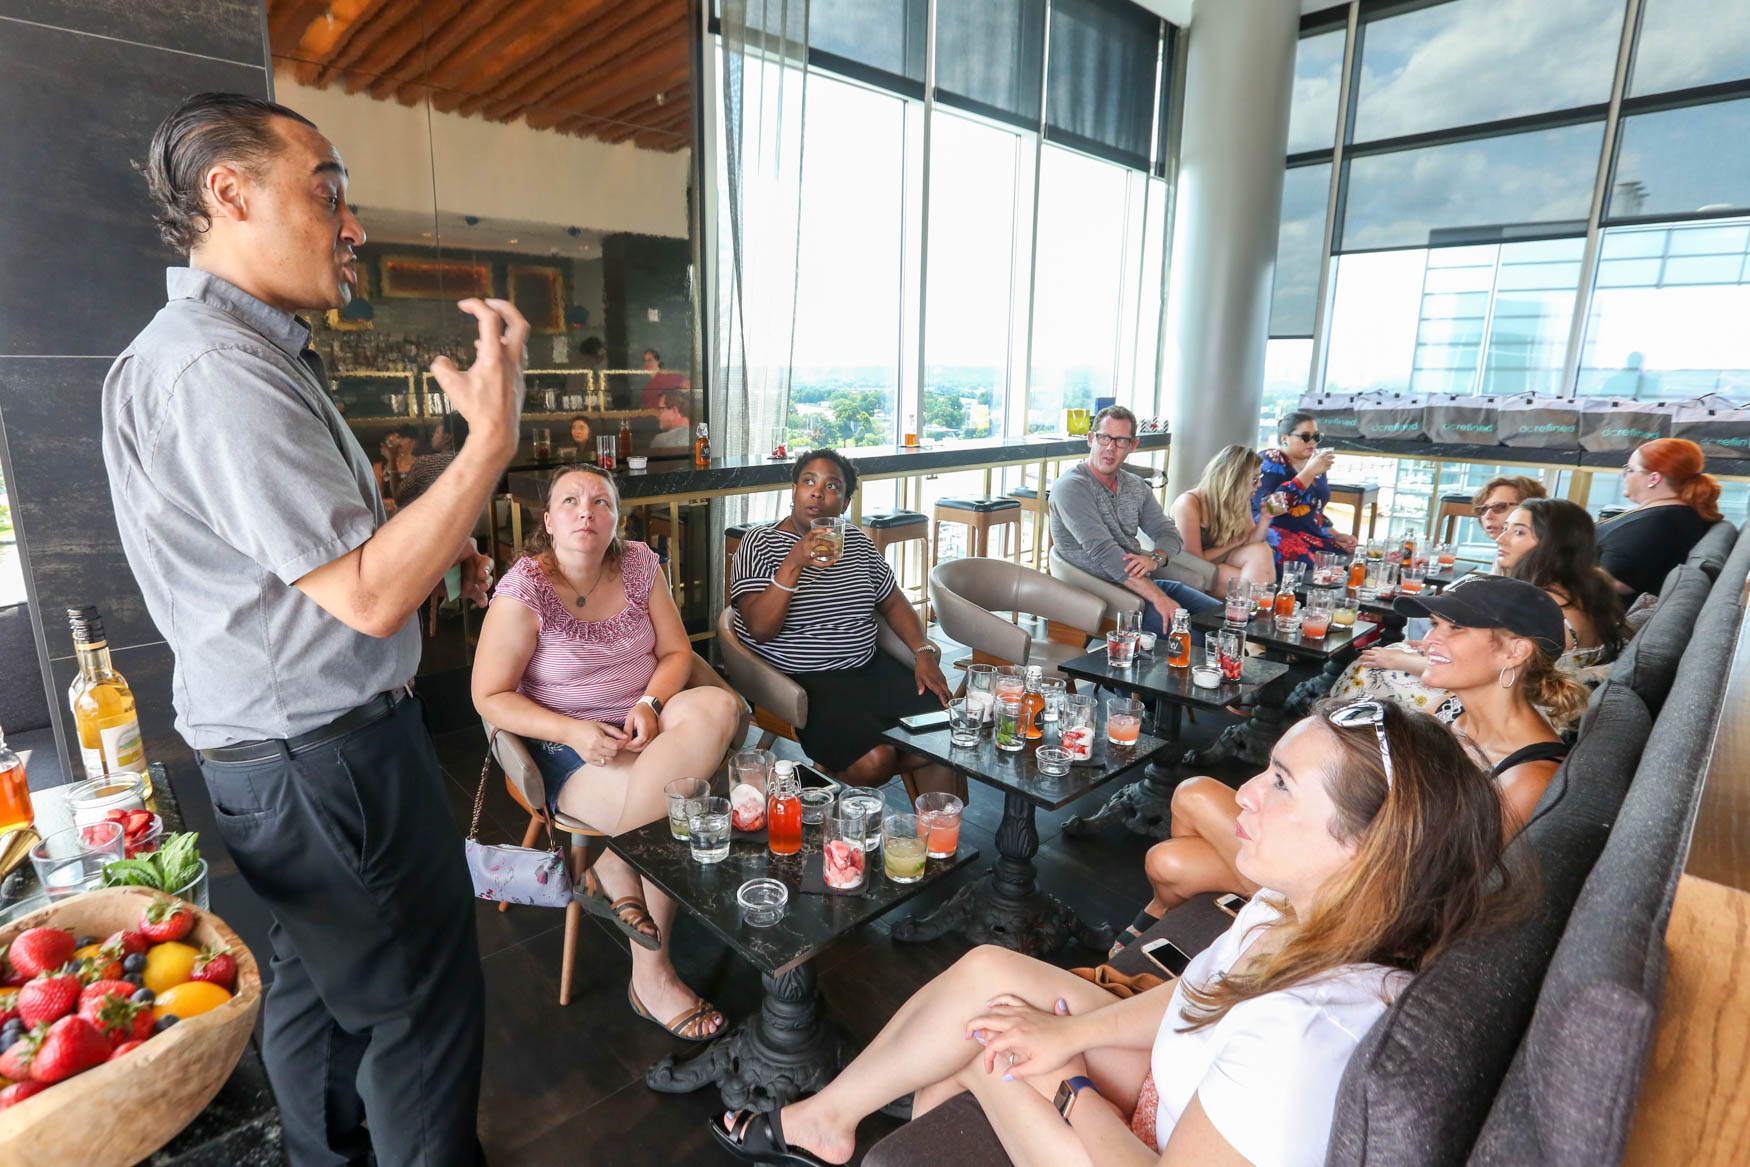 Over a dozen people joined us at Whiskey Charlie on July 29 for a class on making cocktail shrubs - a vinegar based mixer that takes cocktails to the next level. Guests got to enjoy two cocktails, socializing over a gorgeous view from The Wharf, gift bags and raffle prizes. If you missed out on this class, never fear - we'll be hosting another event at Whiskey Charlie in early September.{ } (Amanda Andrade-Rhoades/DC Refined)